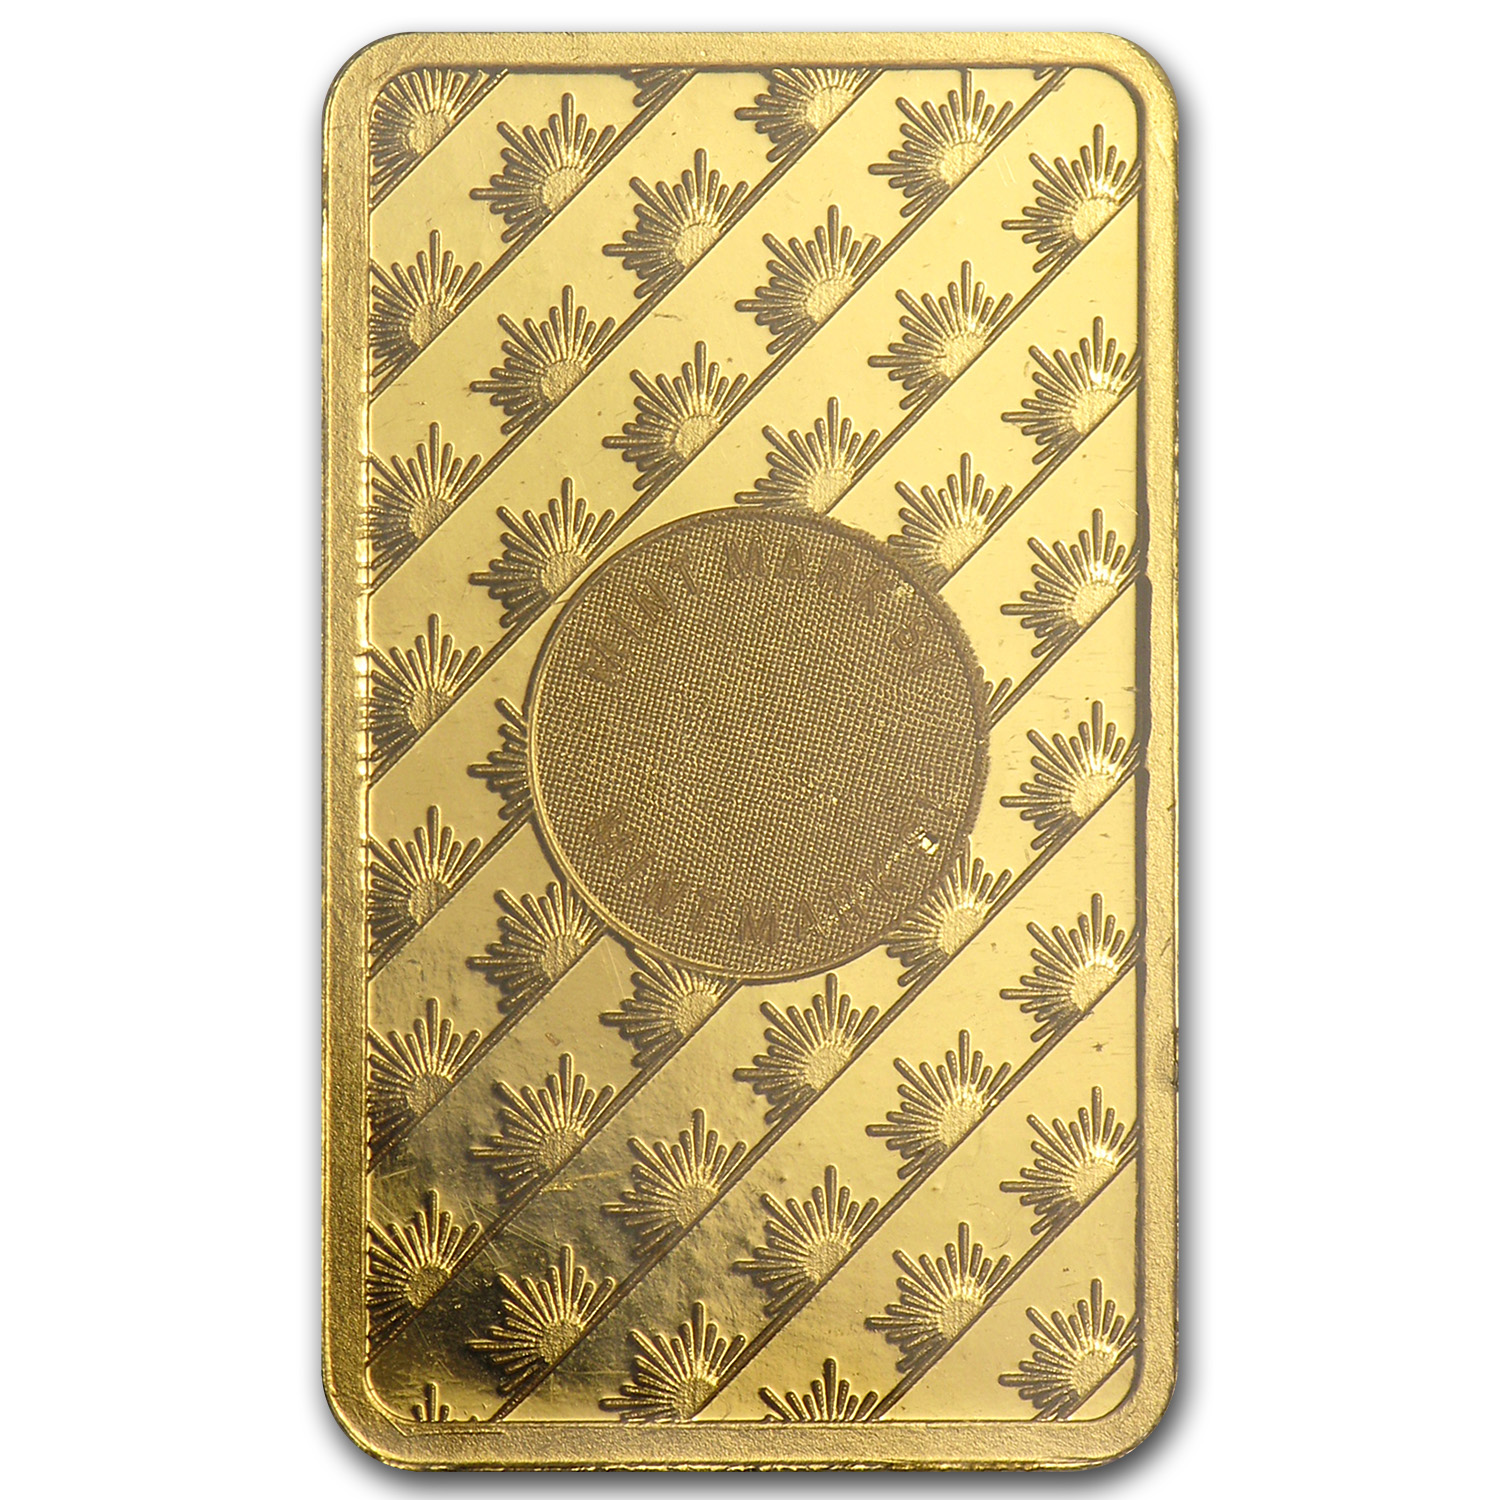 5 gram Gold Bar - Sunshine Minting New Design (In TEP Packaging)